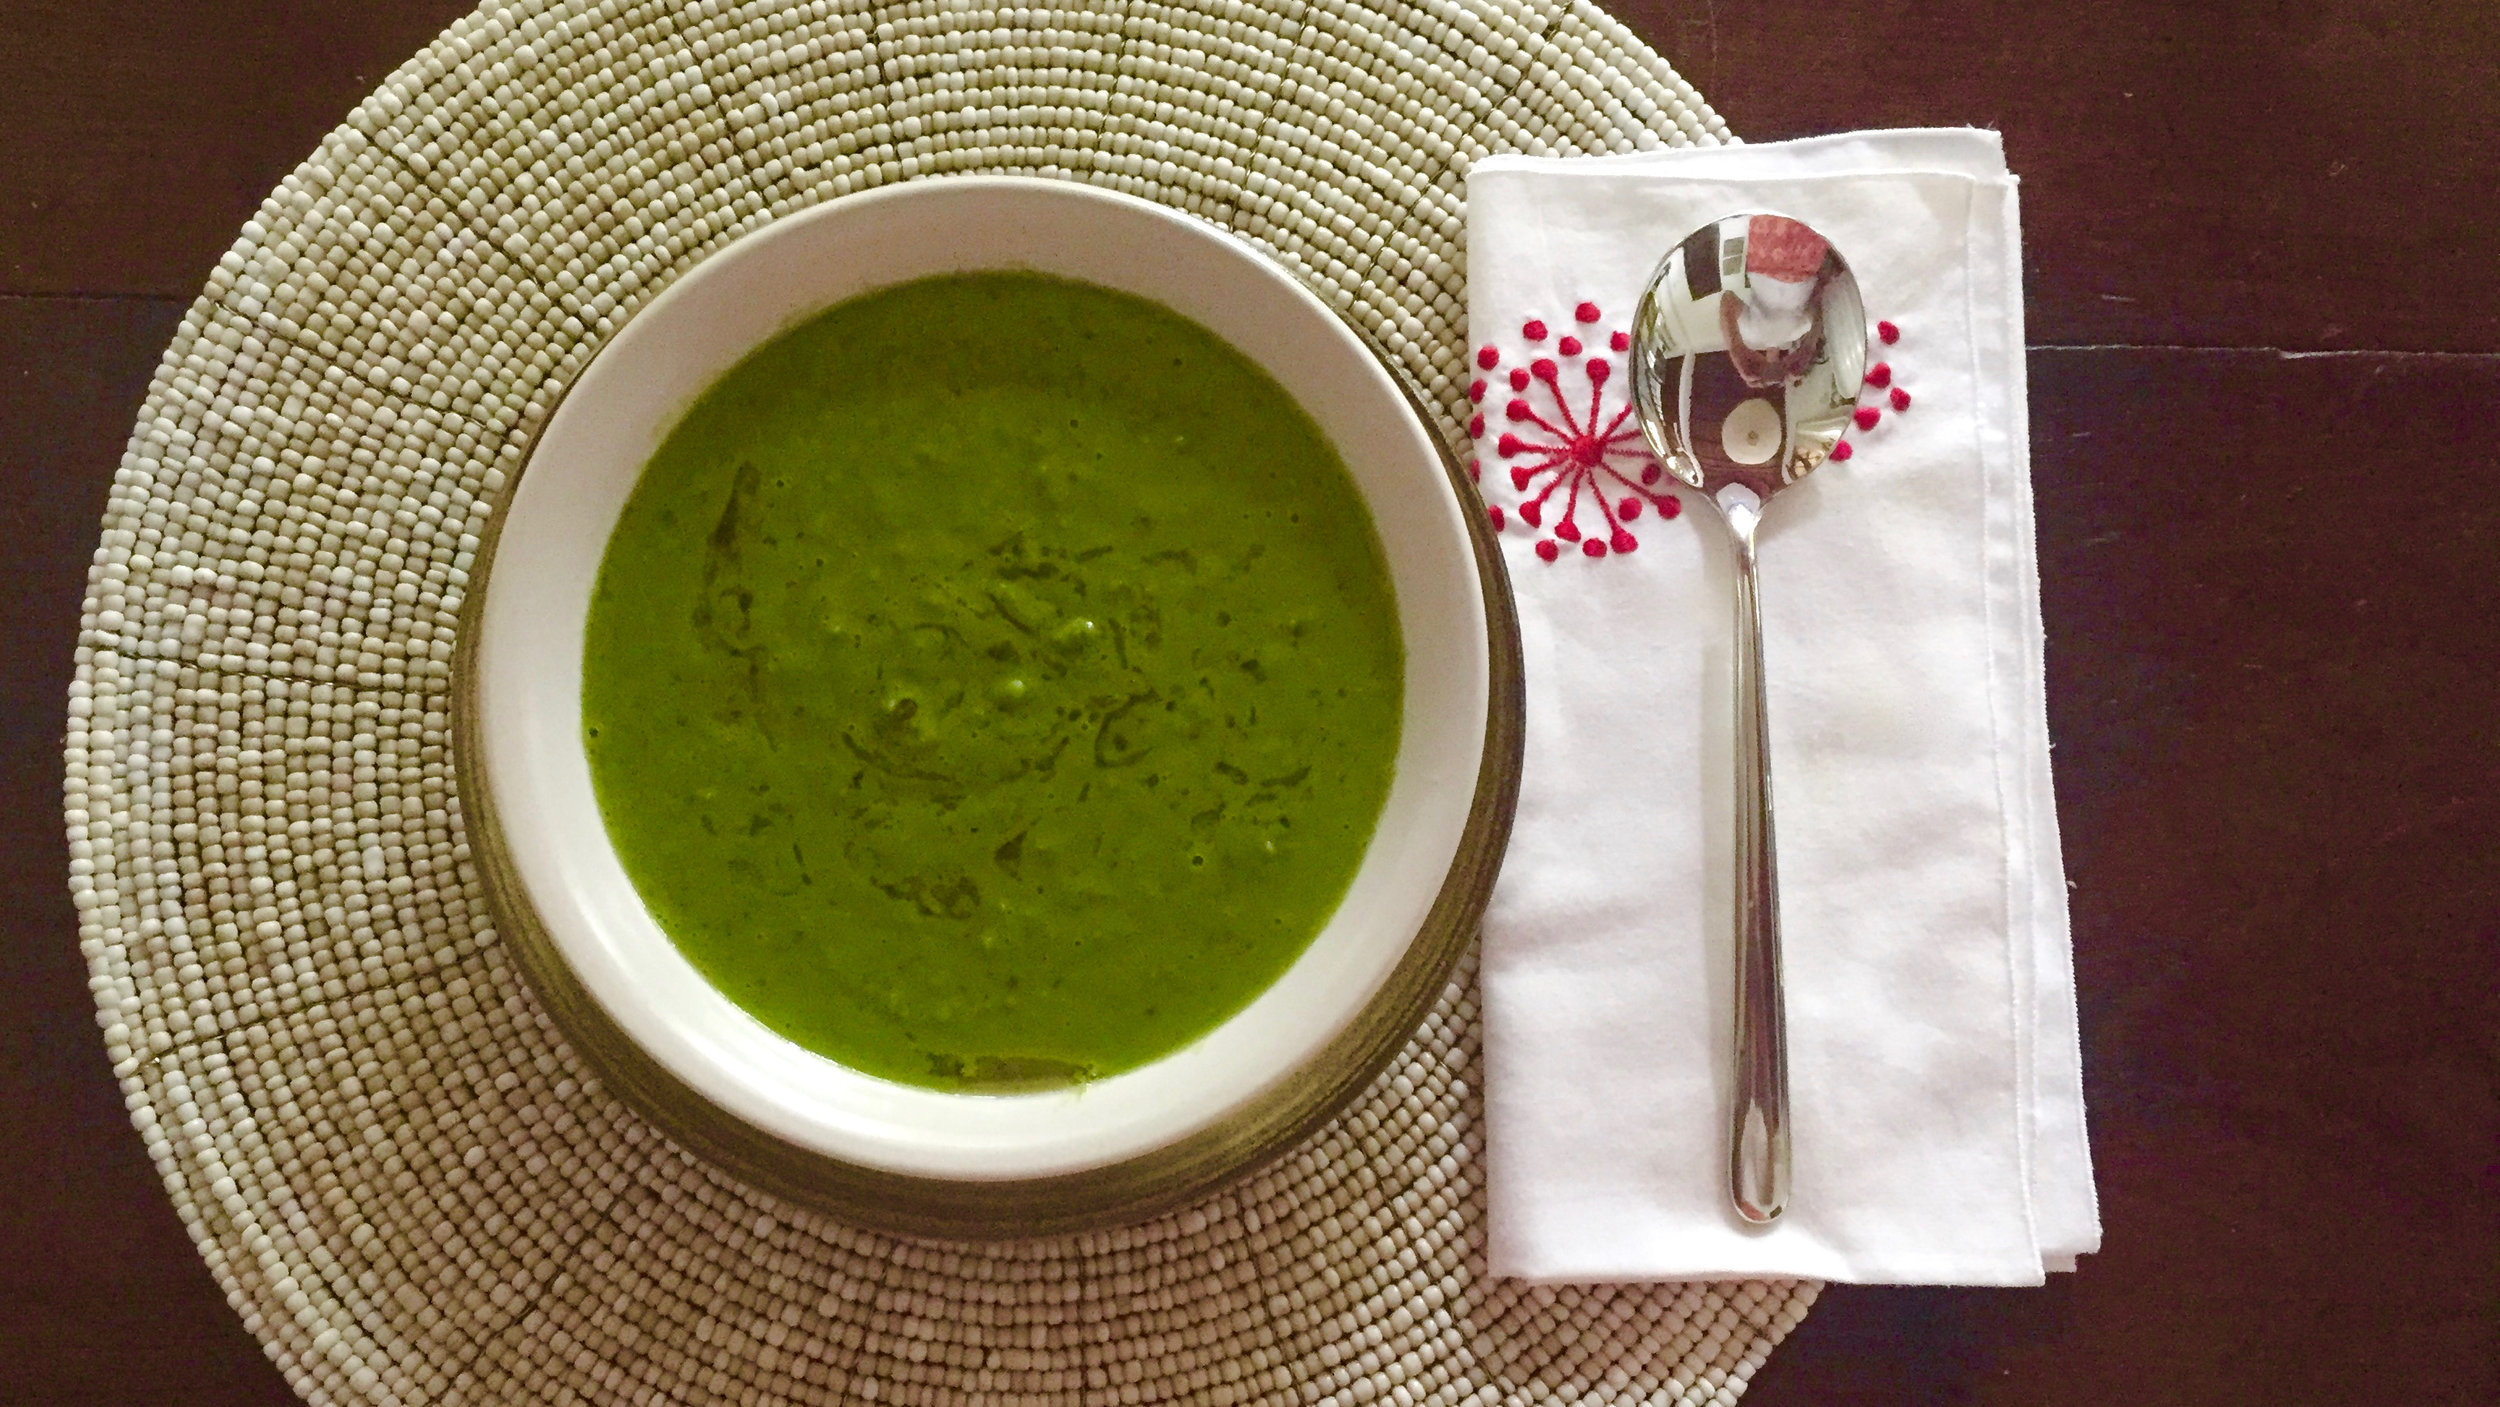 A healthy and zesty pea soup I prepared today